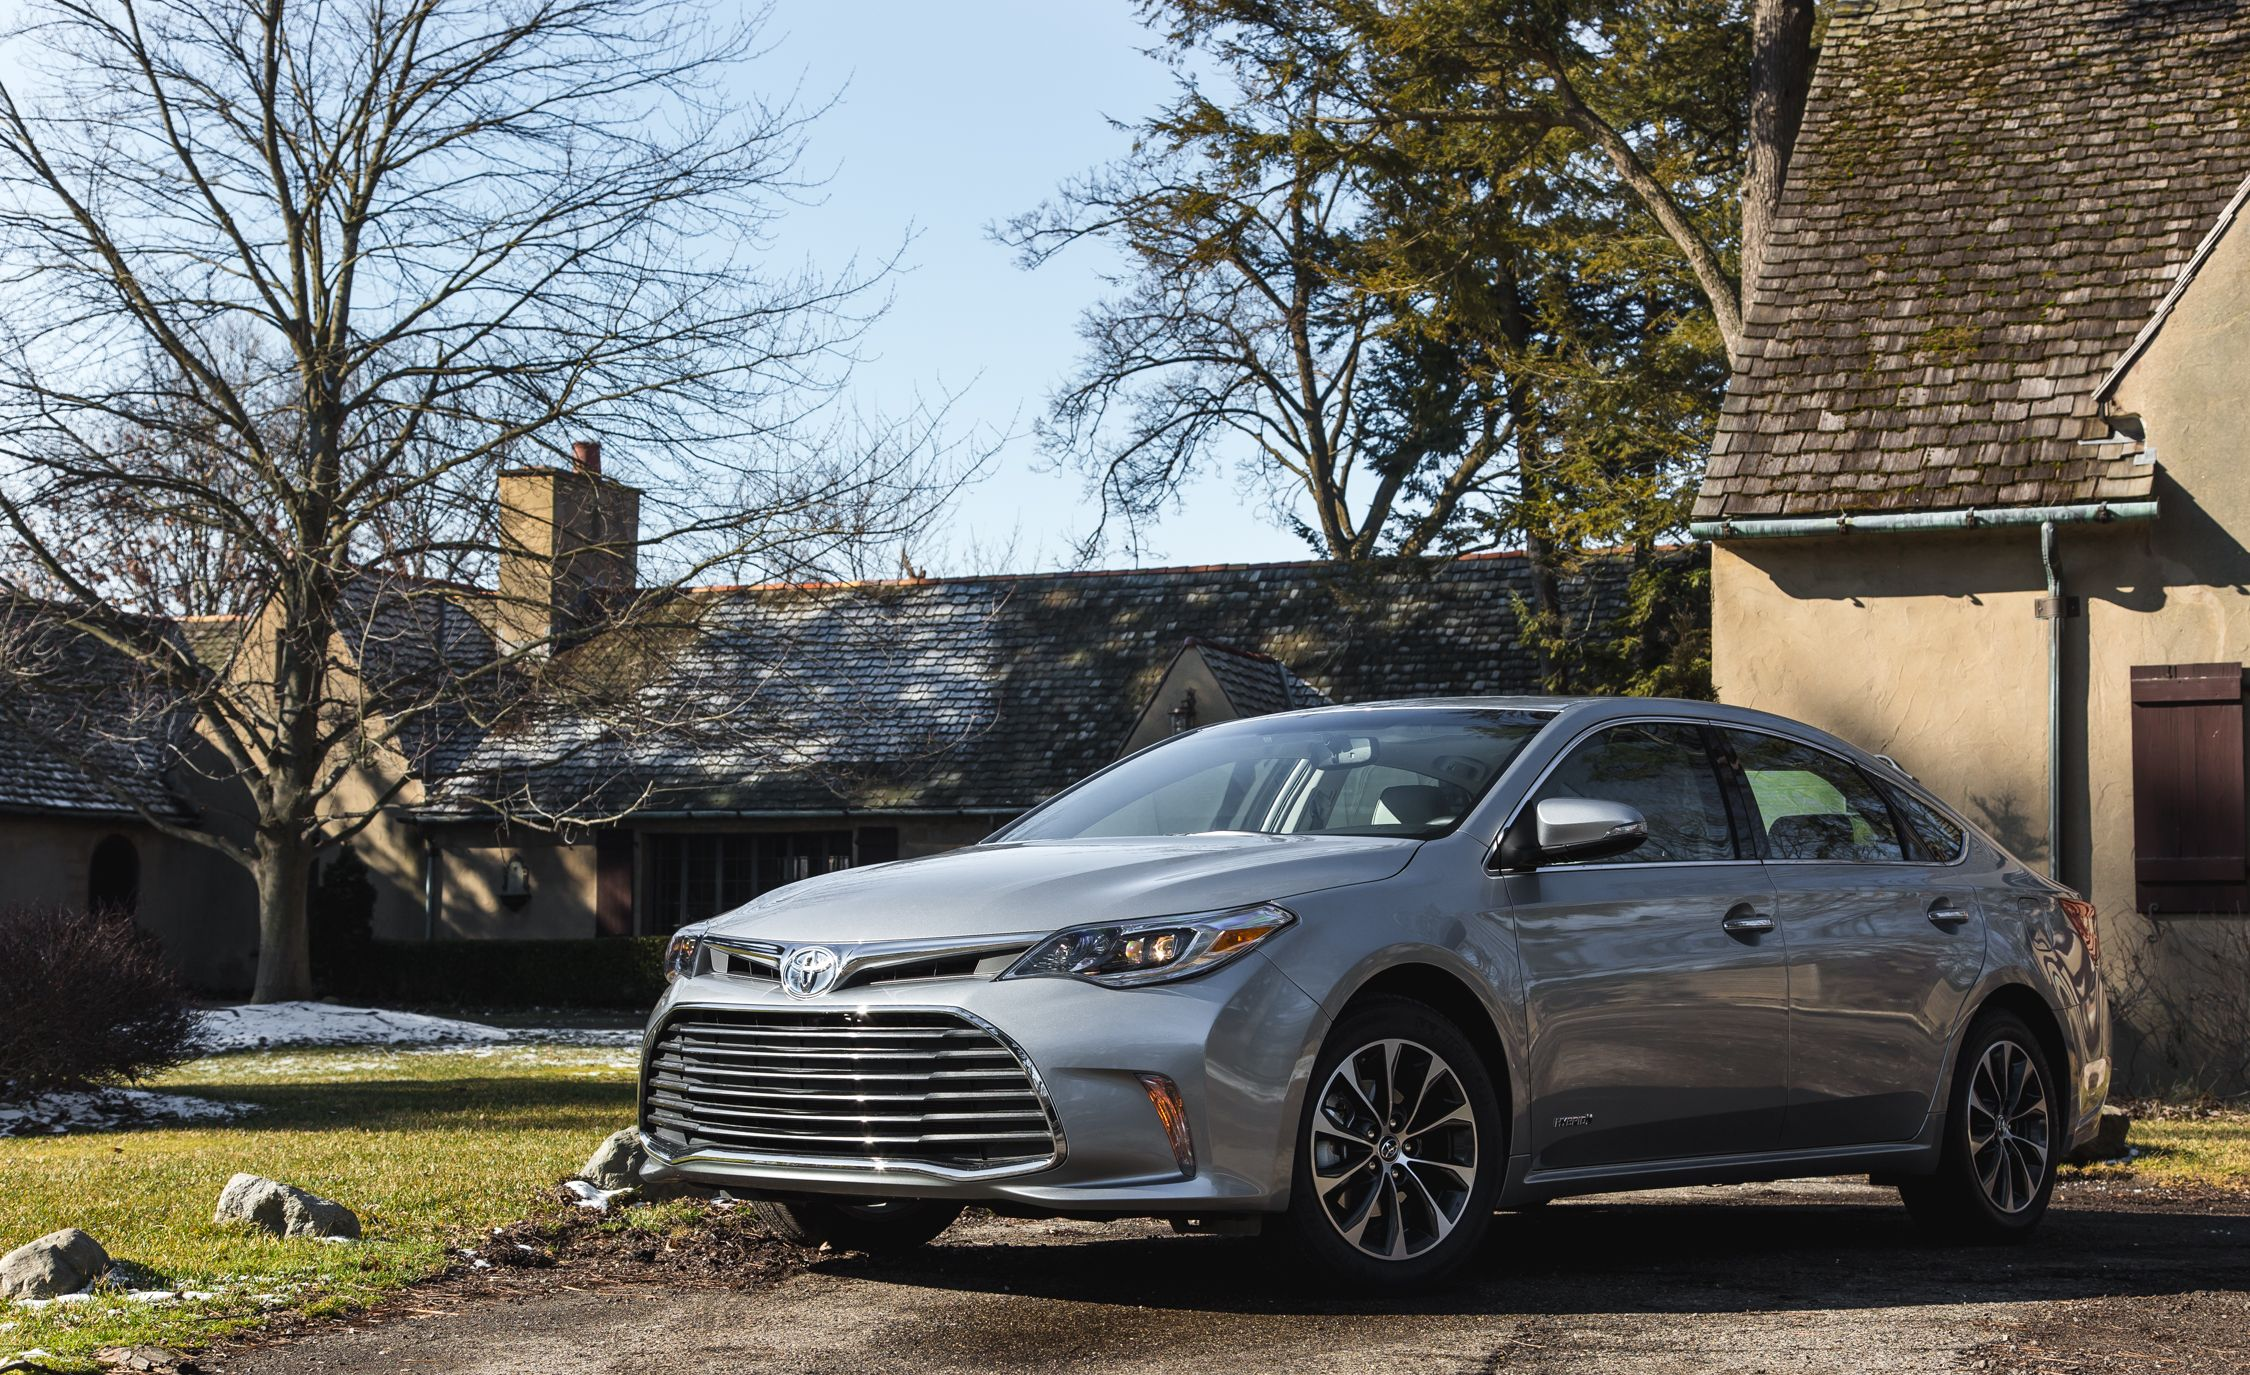 New 2018 Toyota Avalon For Sale Houston Tx: The 10 Most Comfortable New Cars And Crossover SUVs For